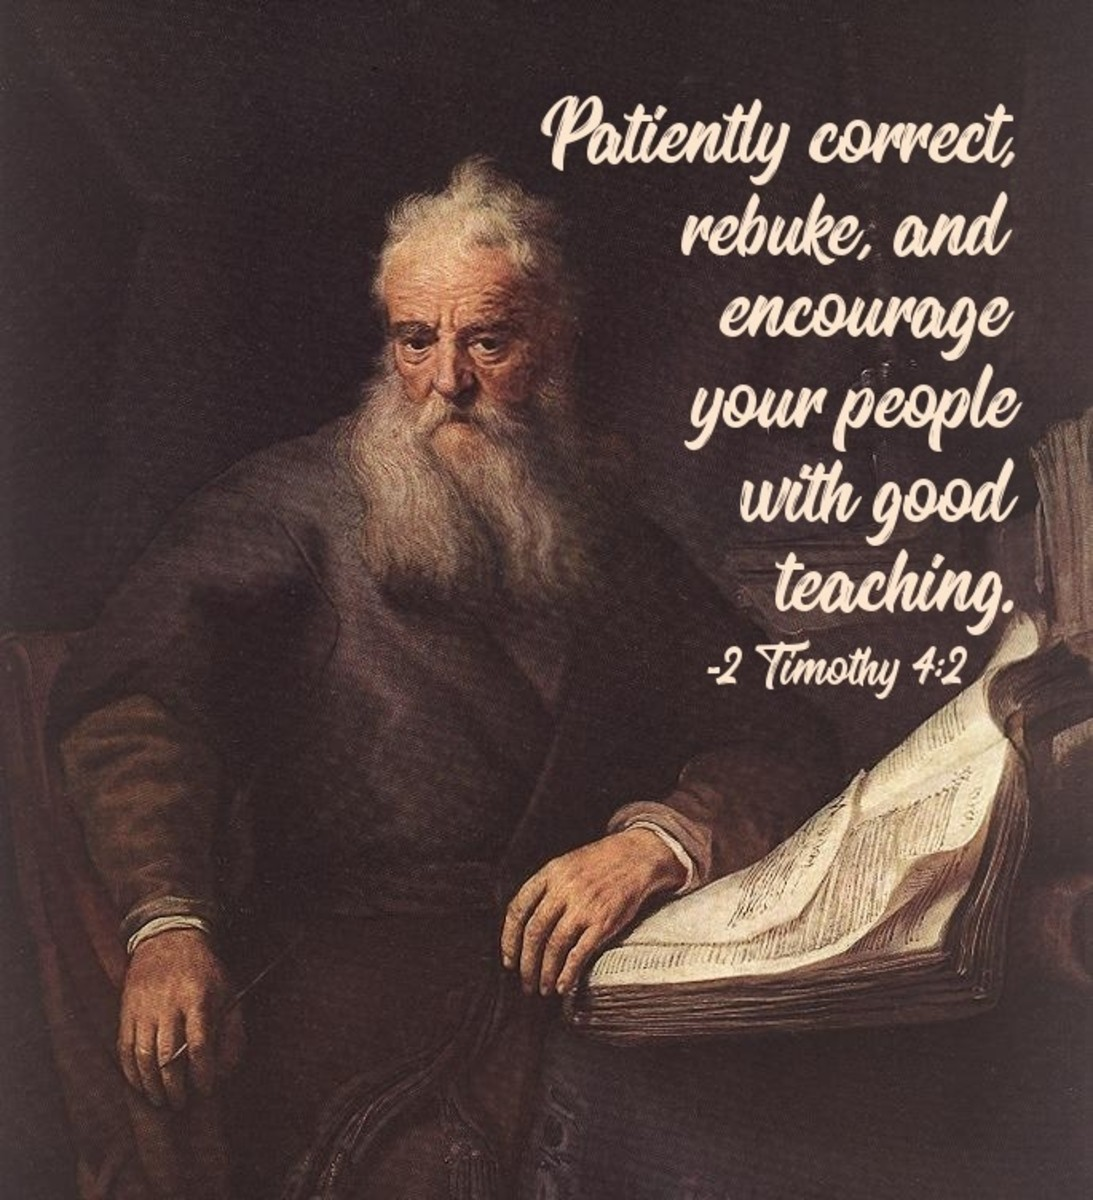 Paul: Patiently correct, rebuke, and encourage your people with good teaching.